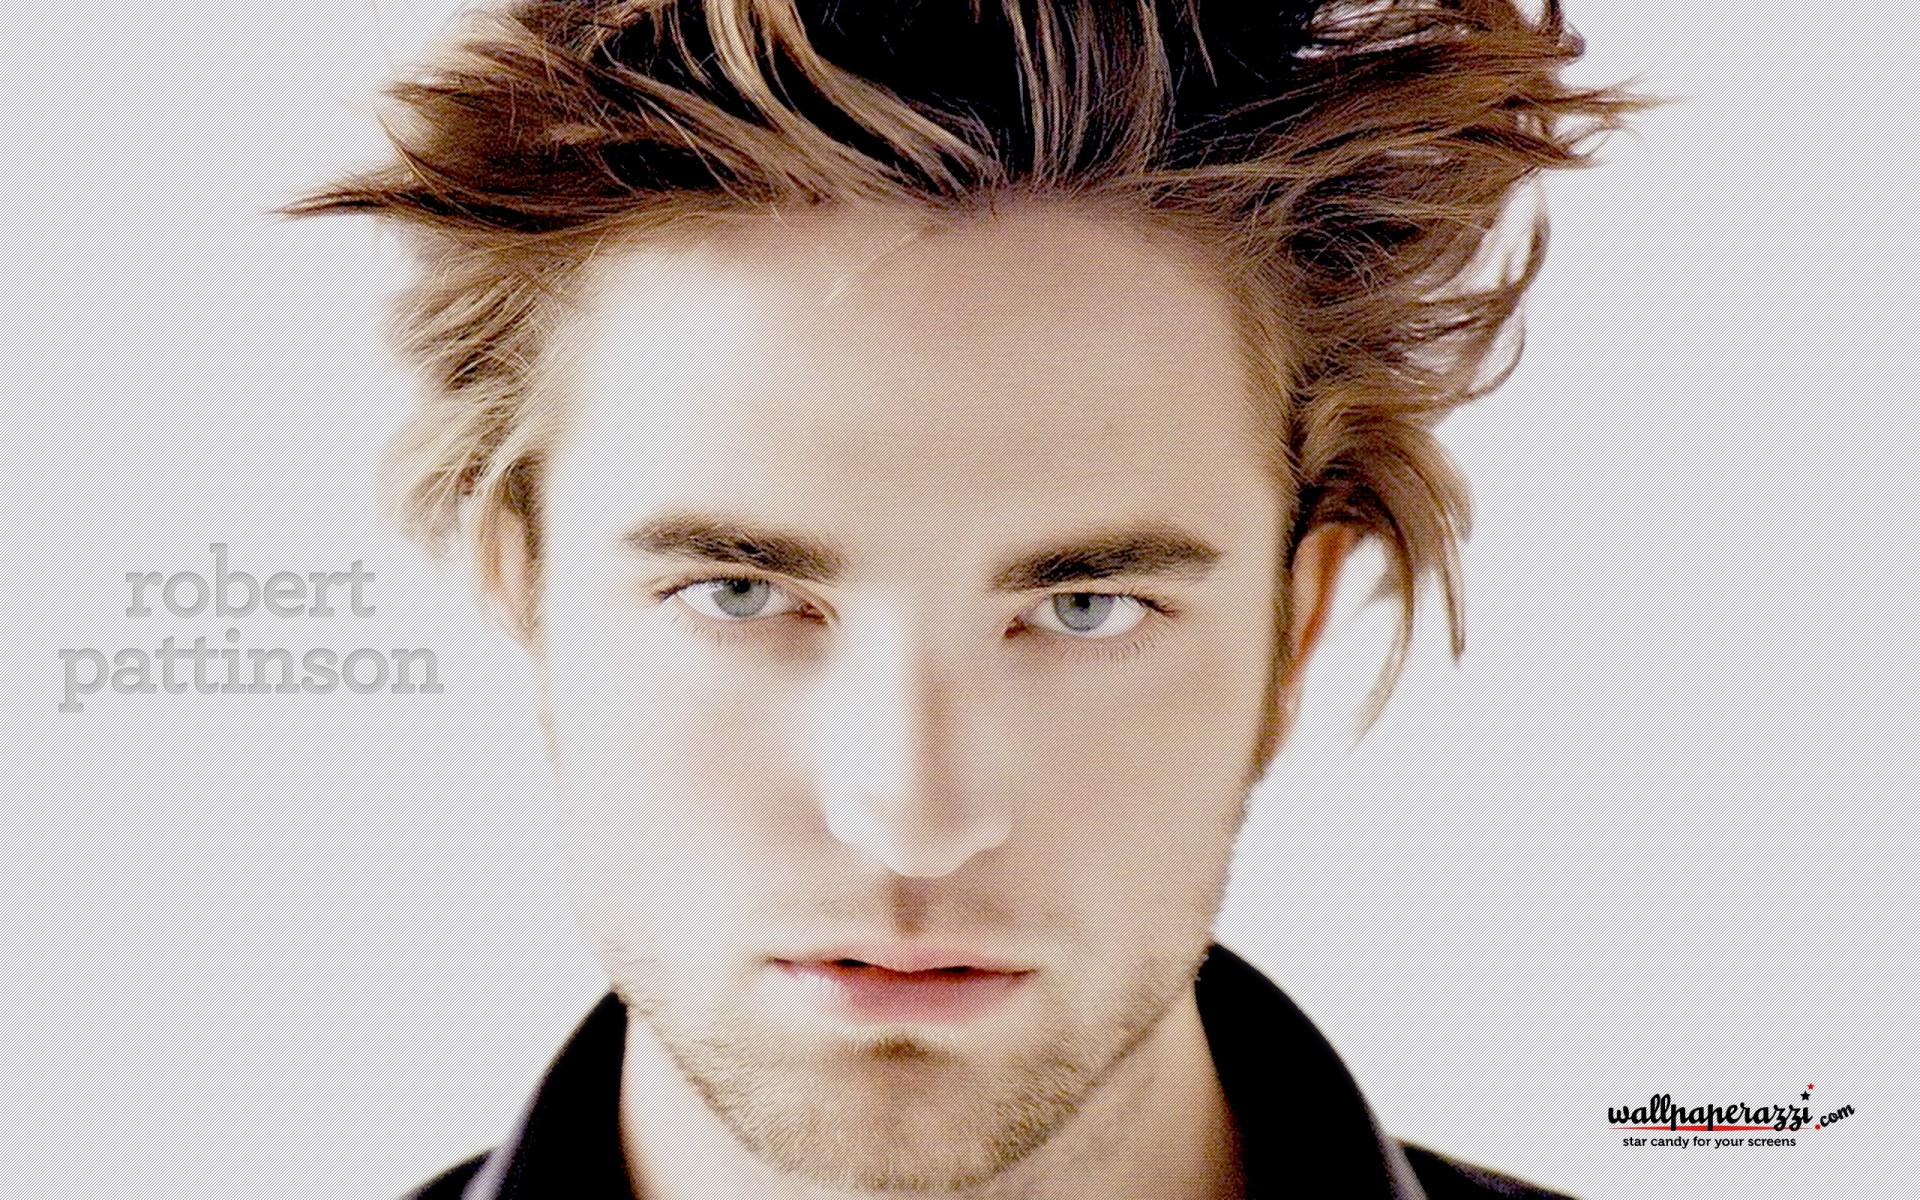 Robert Pattinson wallpaper (robert_pattinson_w001, 1920 x 1200 pixels, 961 kB)